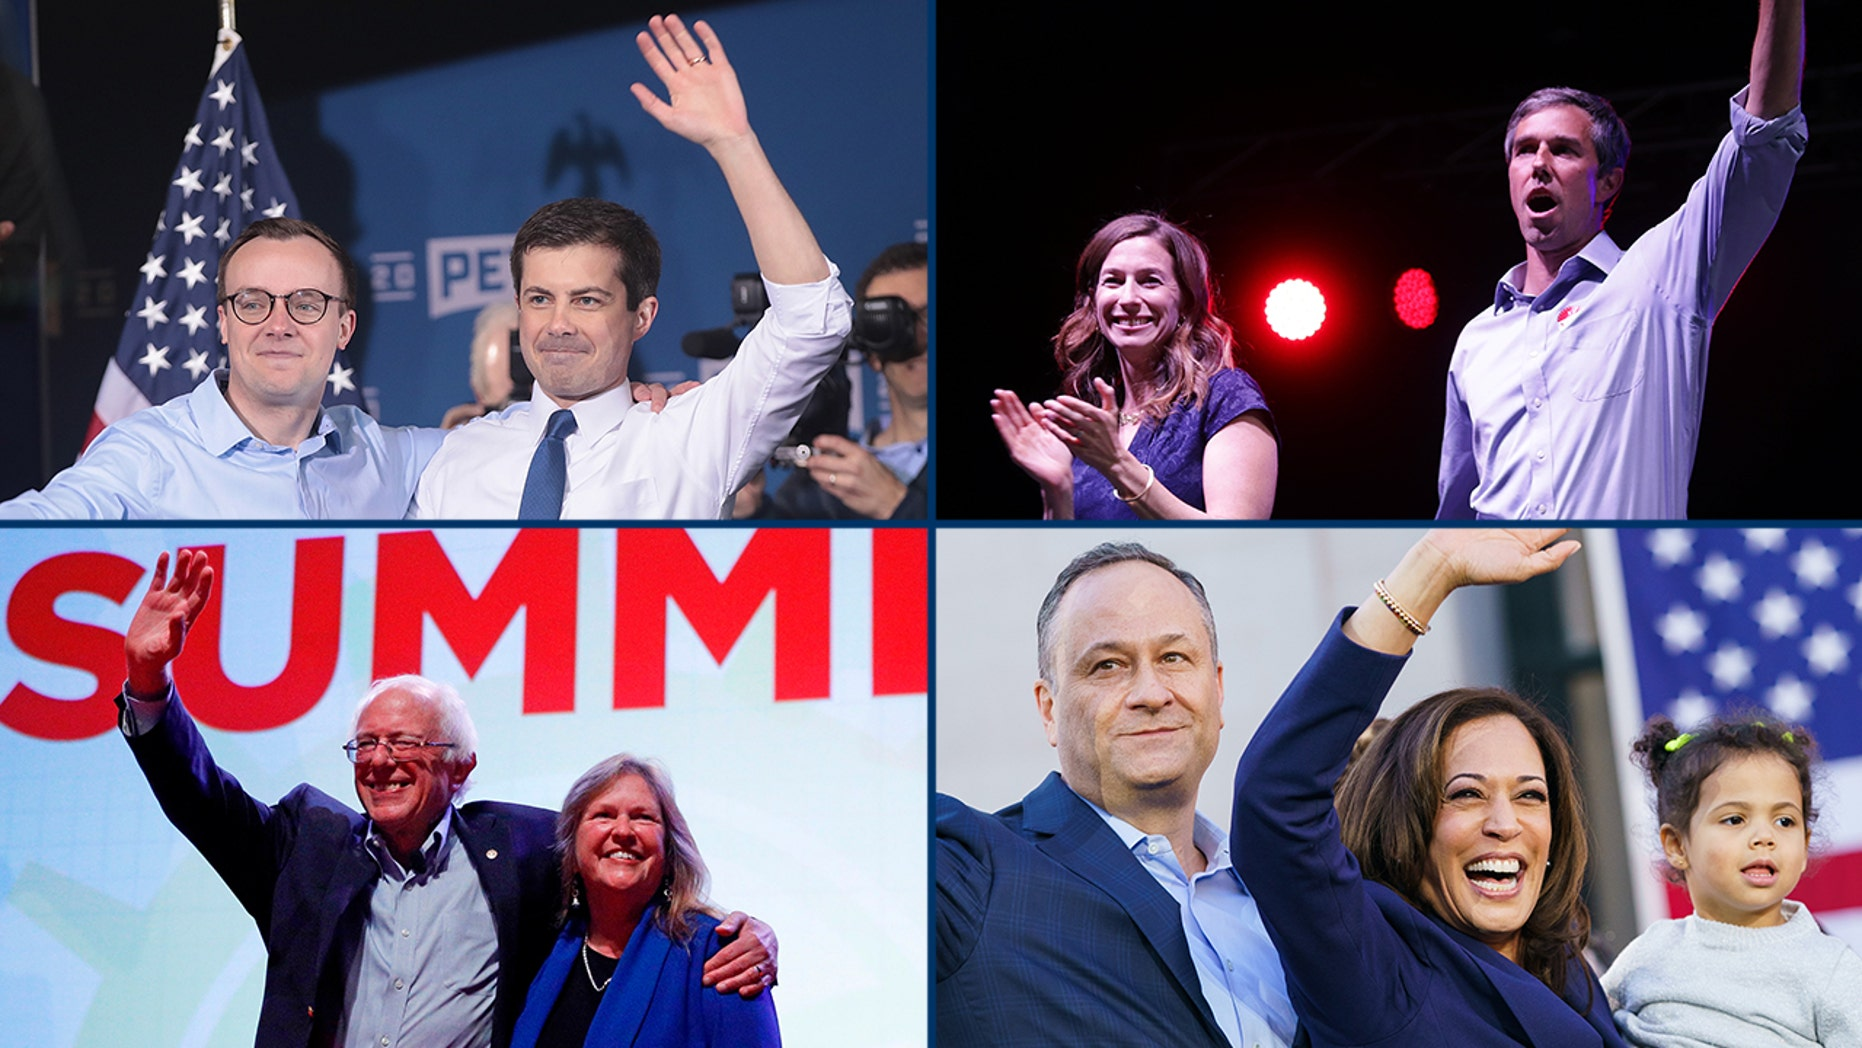 From upper left, clockwise: 2020 couples Pete and Chasten Buttigieg, Beto and Amy O'Rourke, Kamala Harris and Doug Emhoff, and Bernie and Jane O'Meara Sanders.